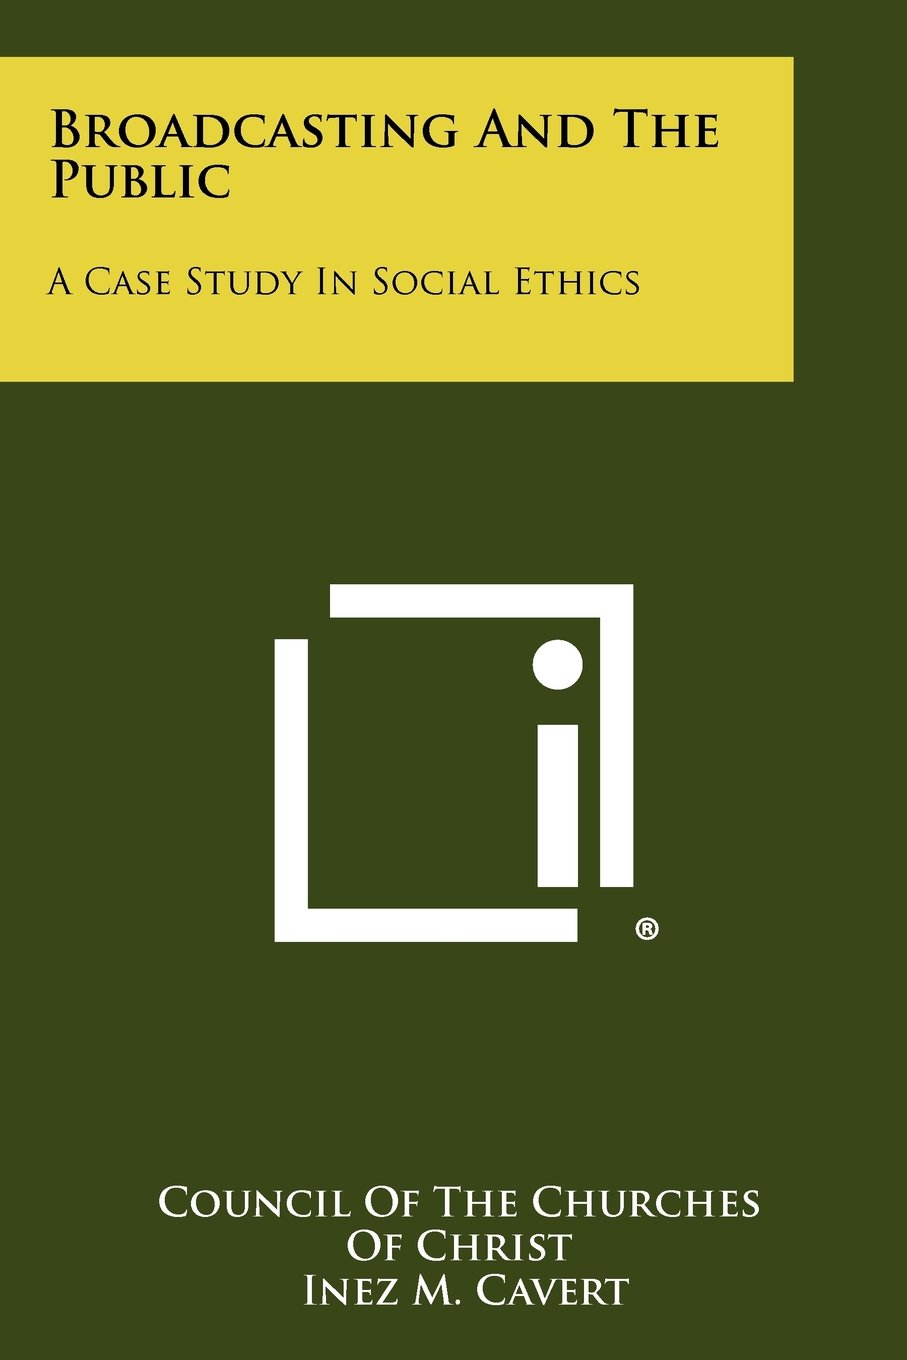 Broadcasting and the Public: A Case Study in Social Ethics PDF